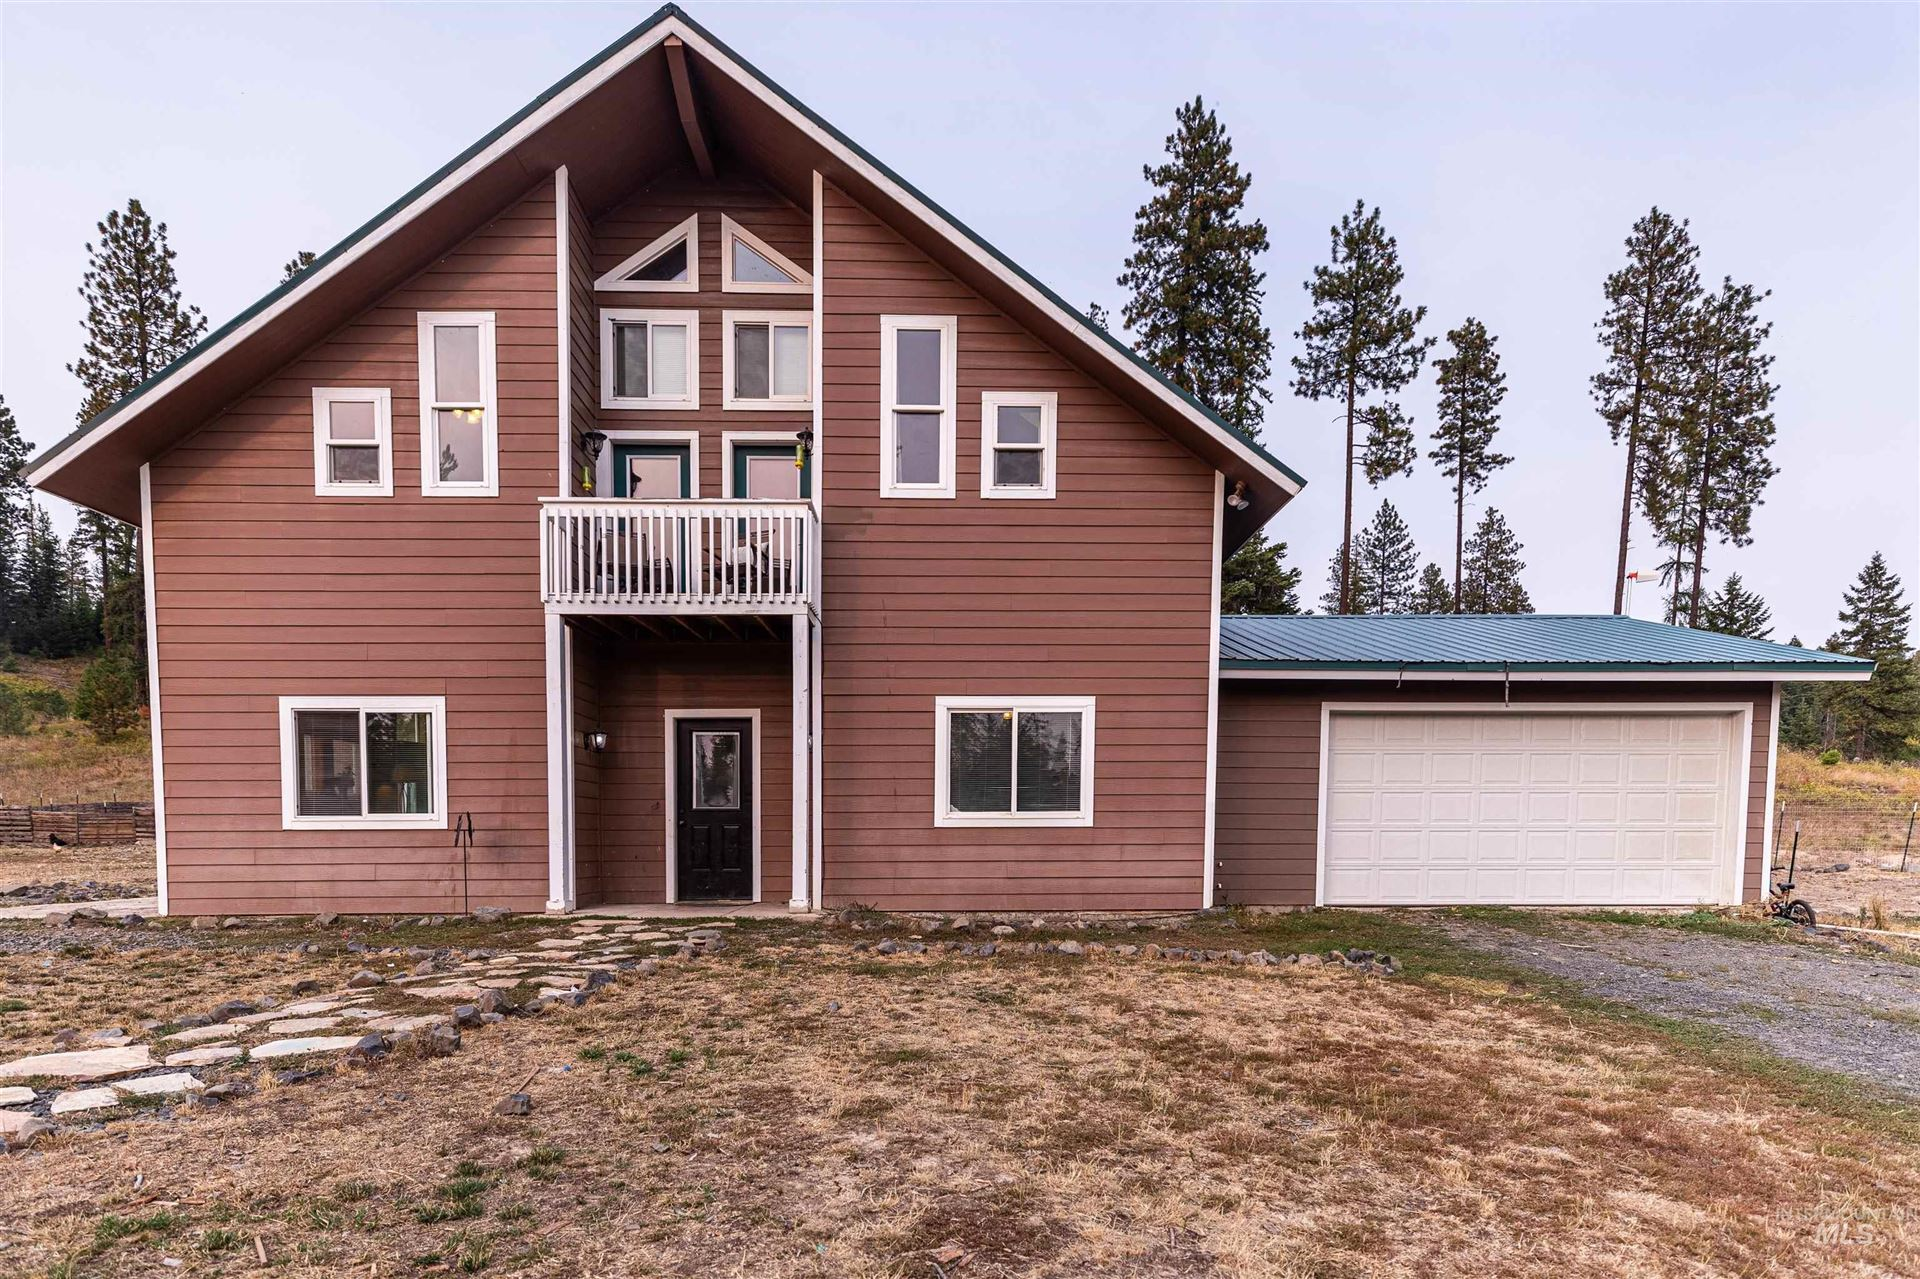 Photo of 1378 Old Avon Rd, Deary, ID 83823 (MLS # 98818898)